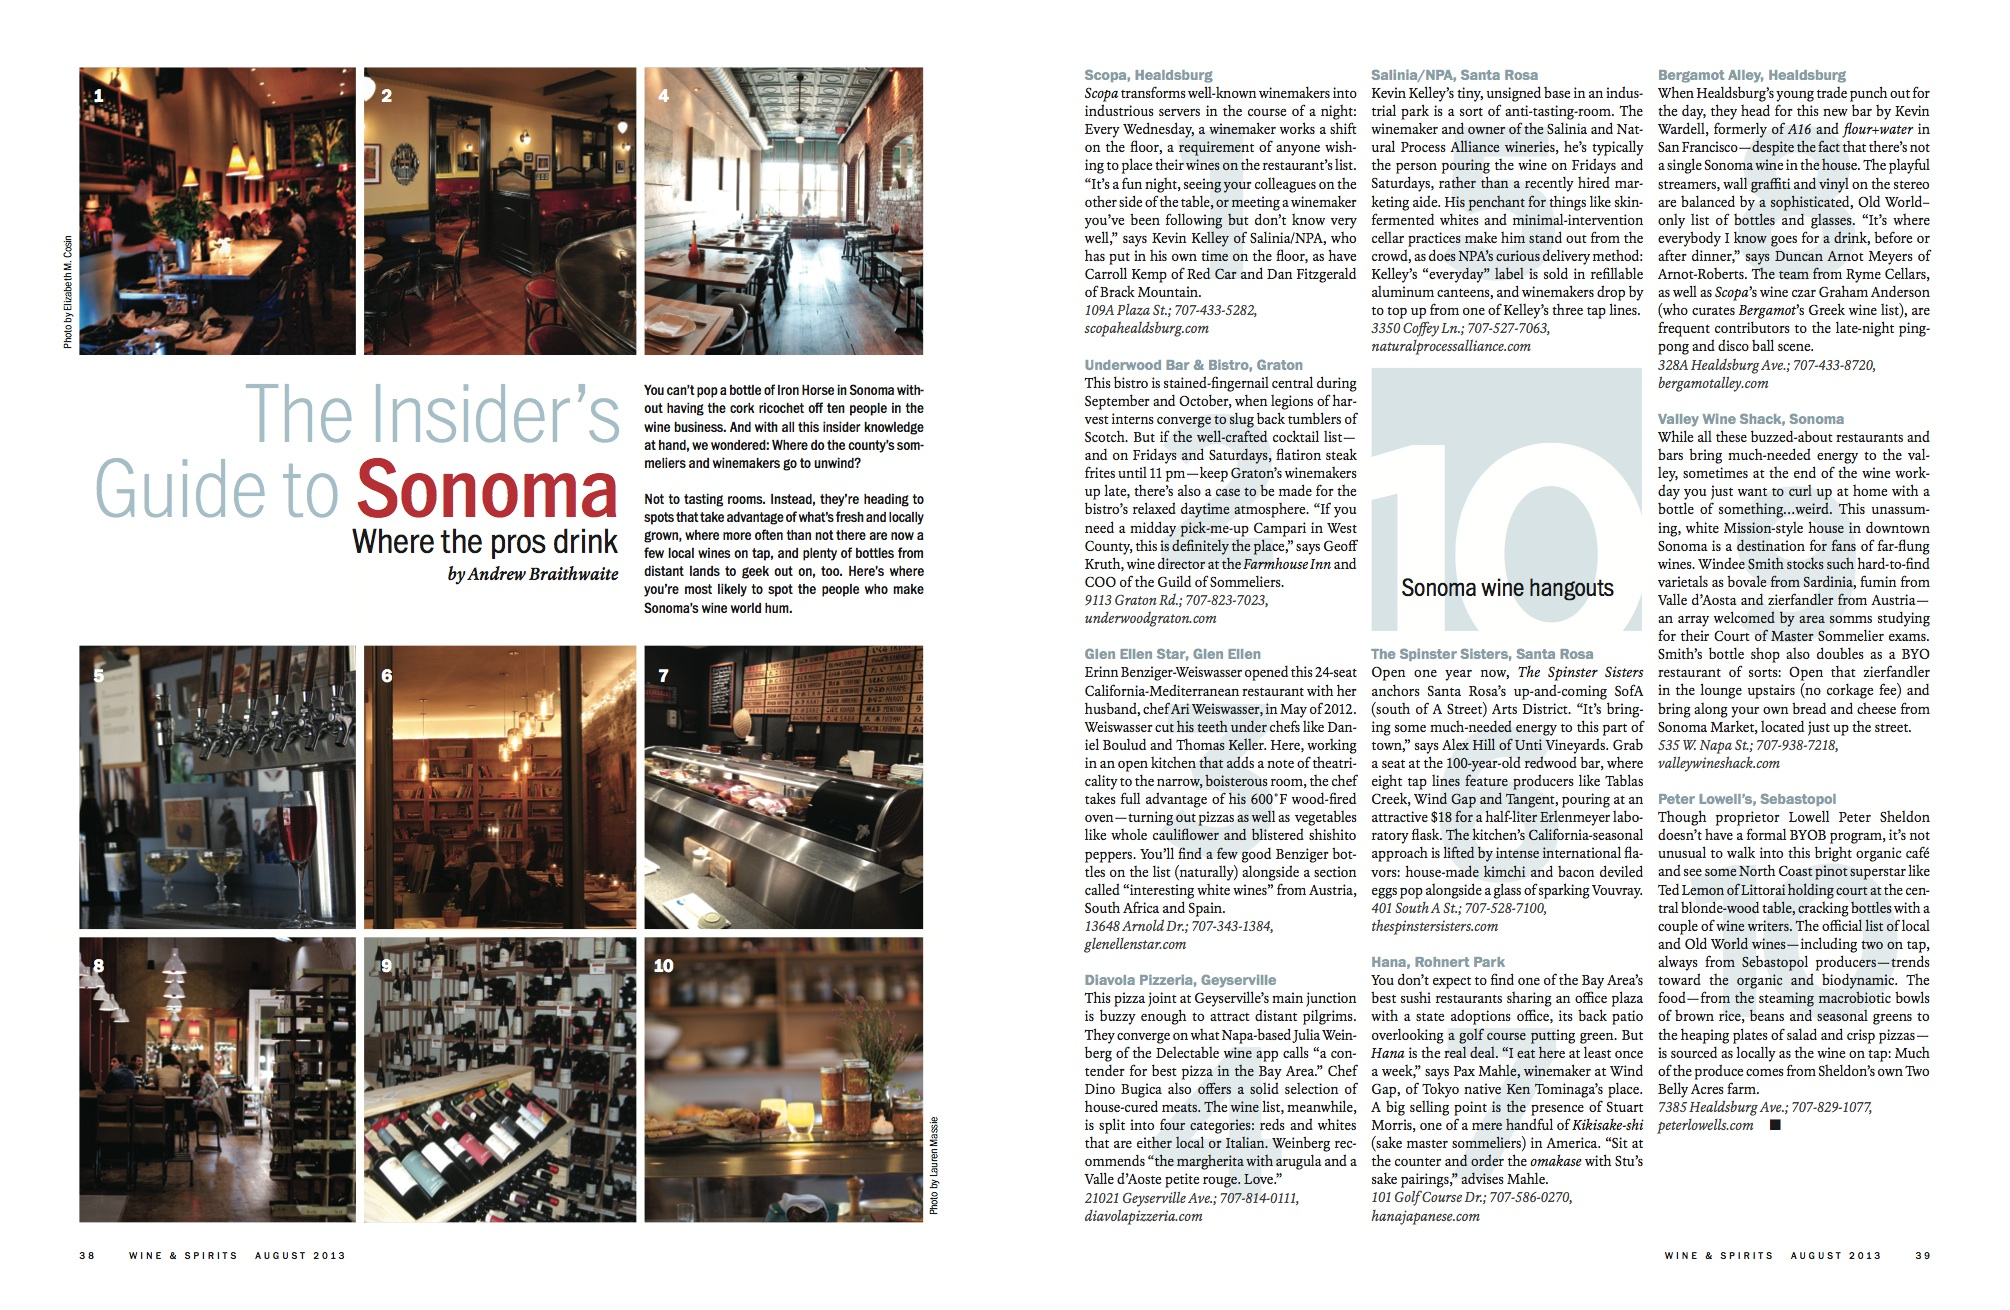 The Insider's Guide to Sonoma // Wine & Spirits // 2013 // pdf